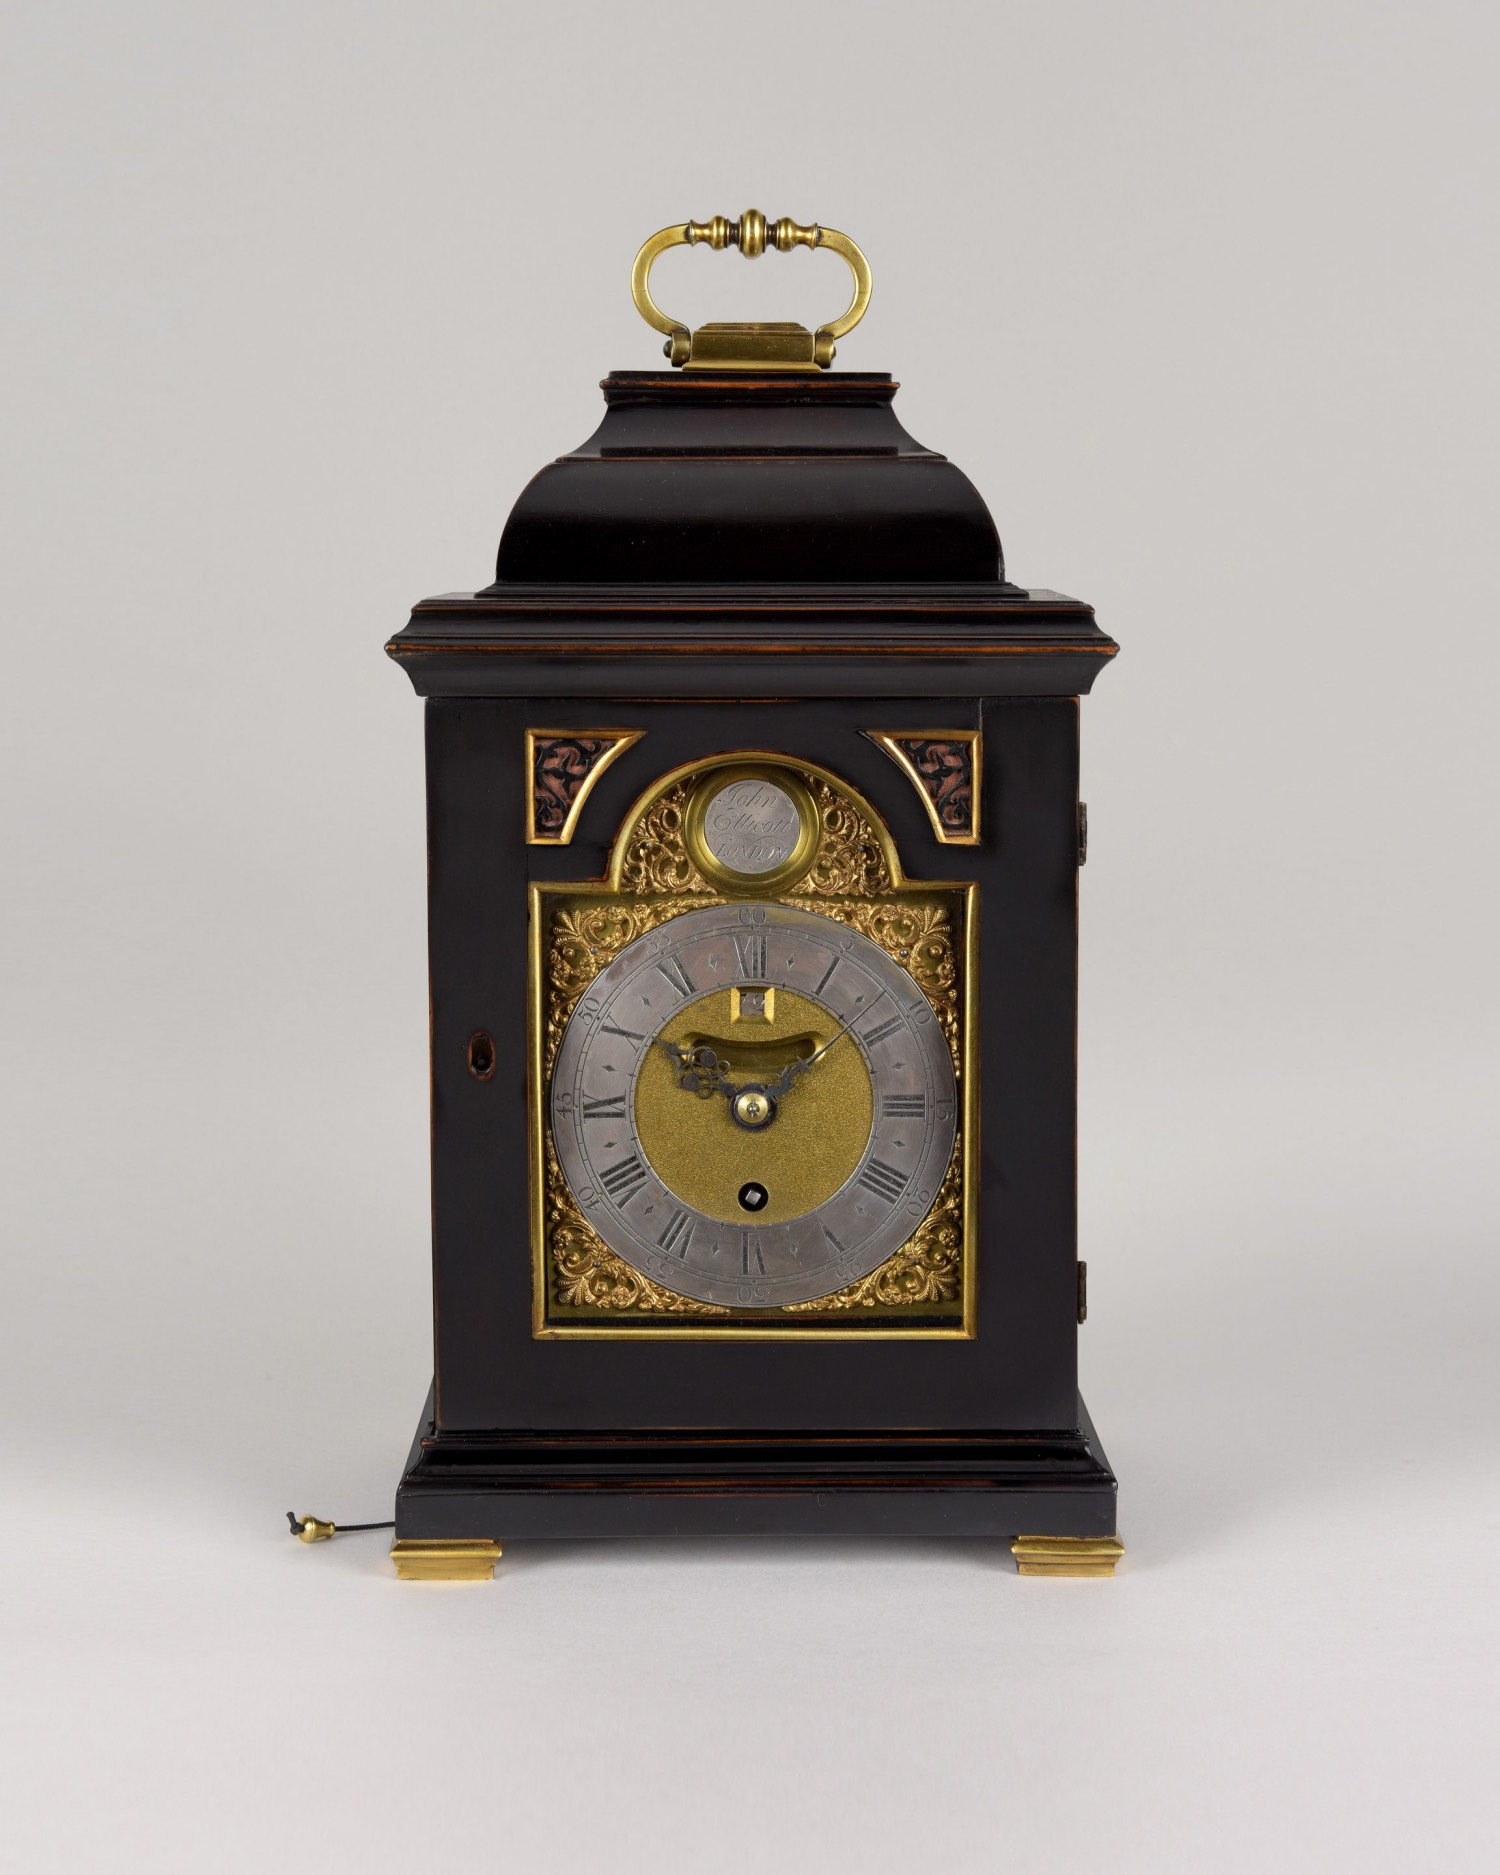 JOHN ELLICOTT. A GOOD GEORGE II PERIOD EBONISED PEARWOOD TIMEPIECE BRACKET CLOCK OF SMALL SIZE